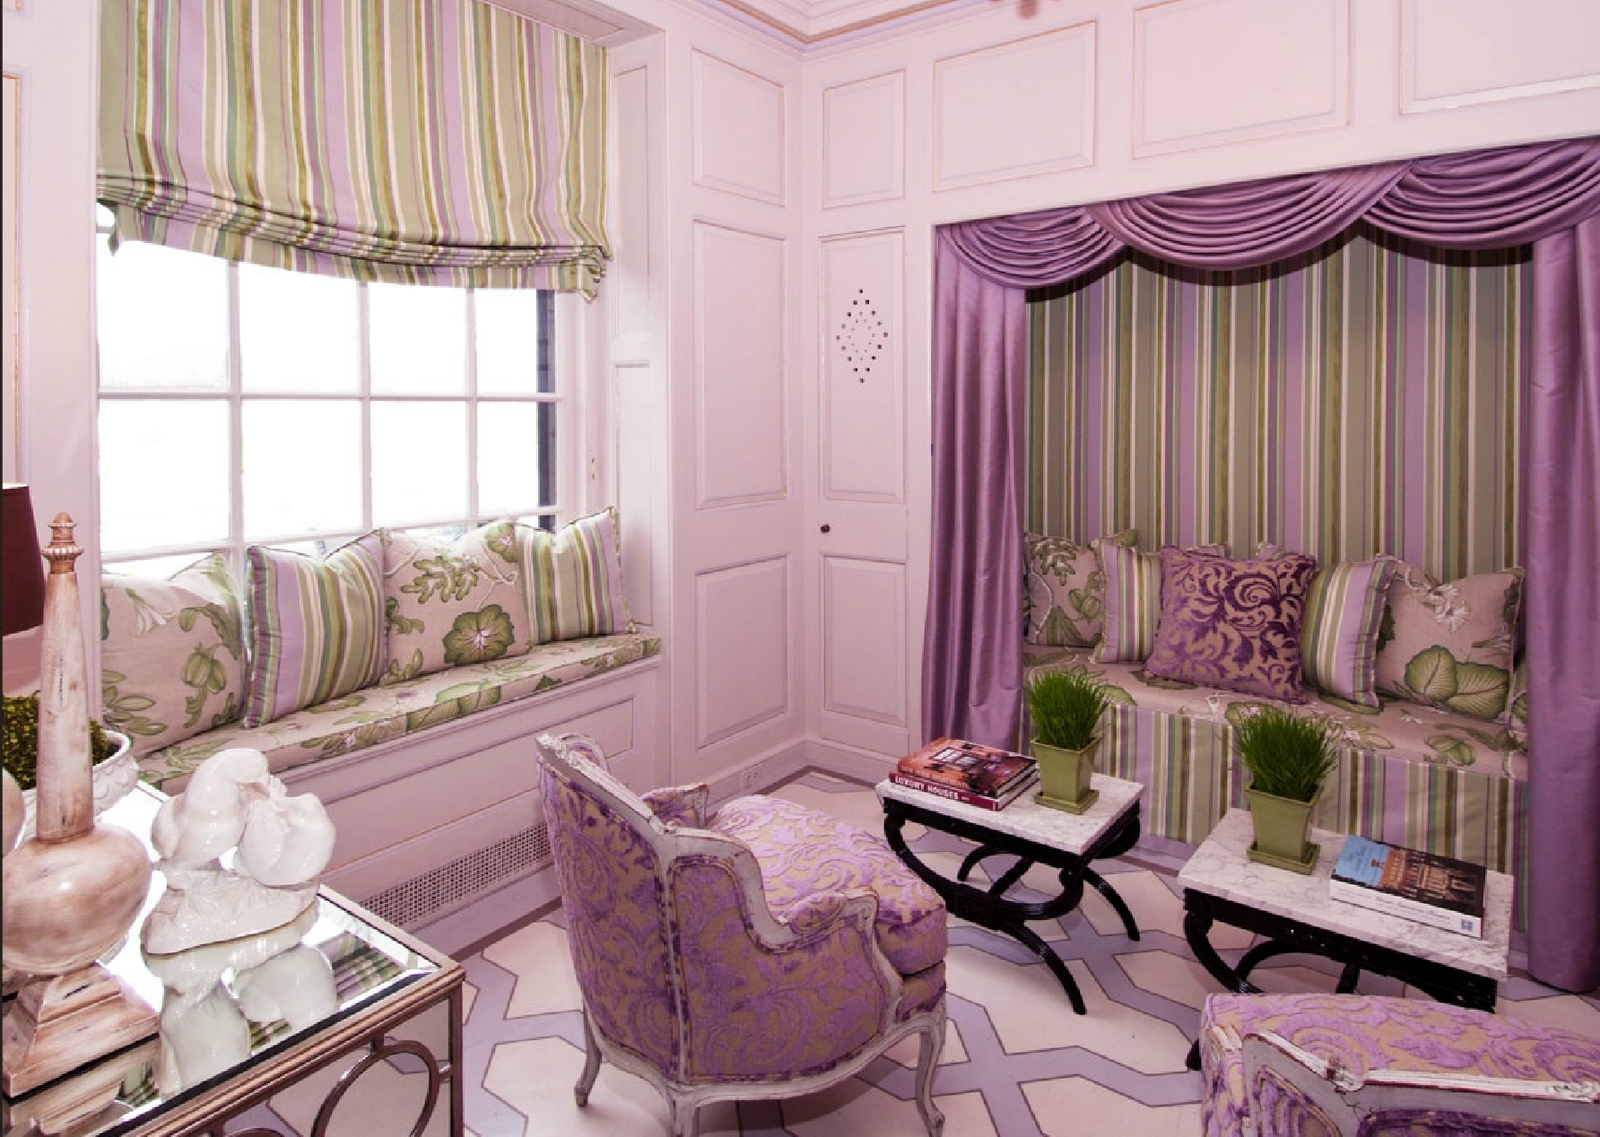 http://www.home-designing.com/wp-content/uploads/2013/02/4-teen-girls-bedroom-7.png